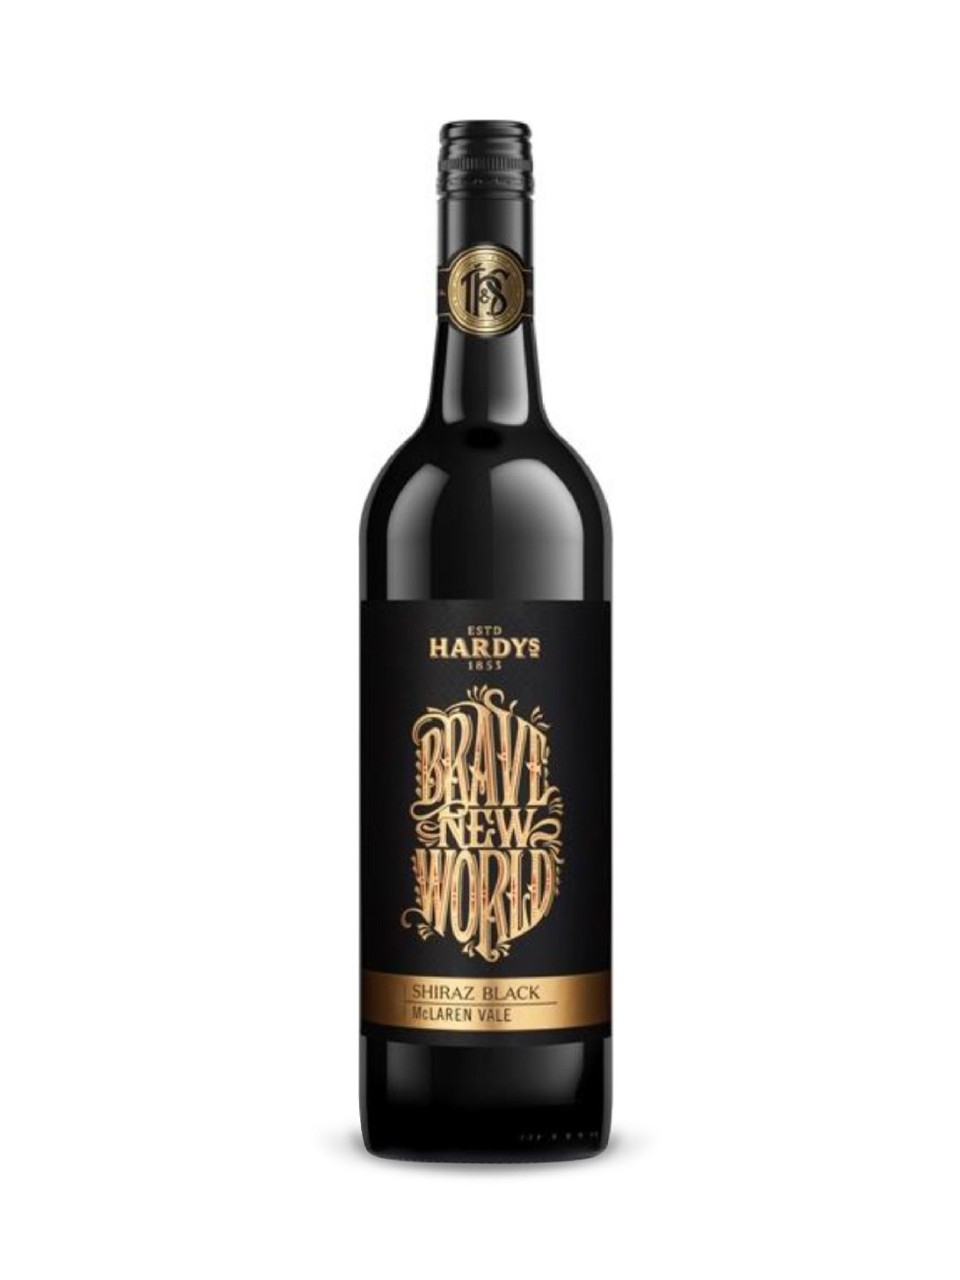 Shiraz Black Brave New World Hardys